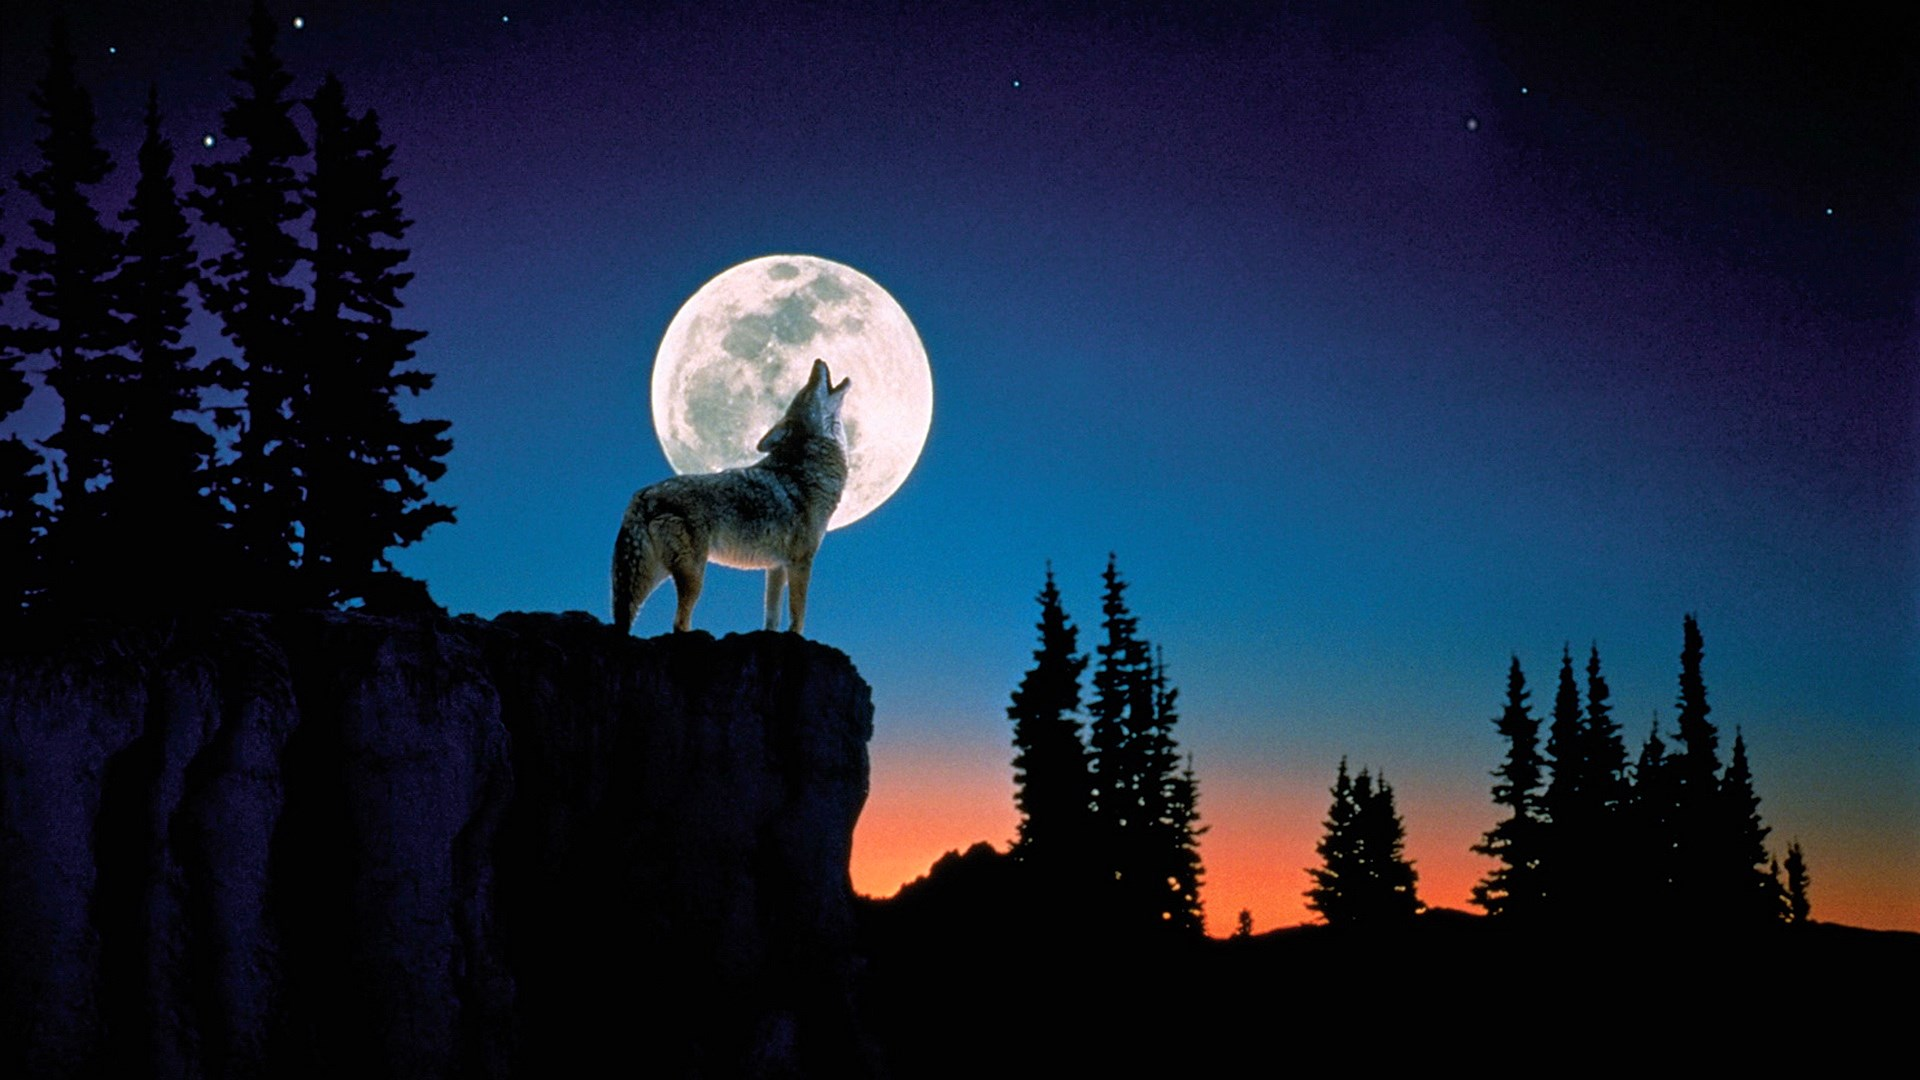 1920-x-1080px-wolf-and-moon-for-mac-computers-by-Travon-Longman-wallpaper-wpc580607